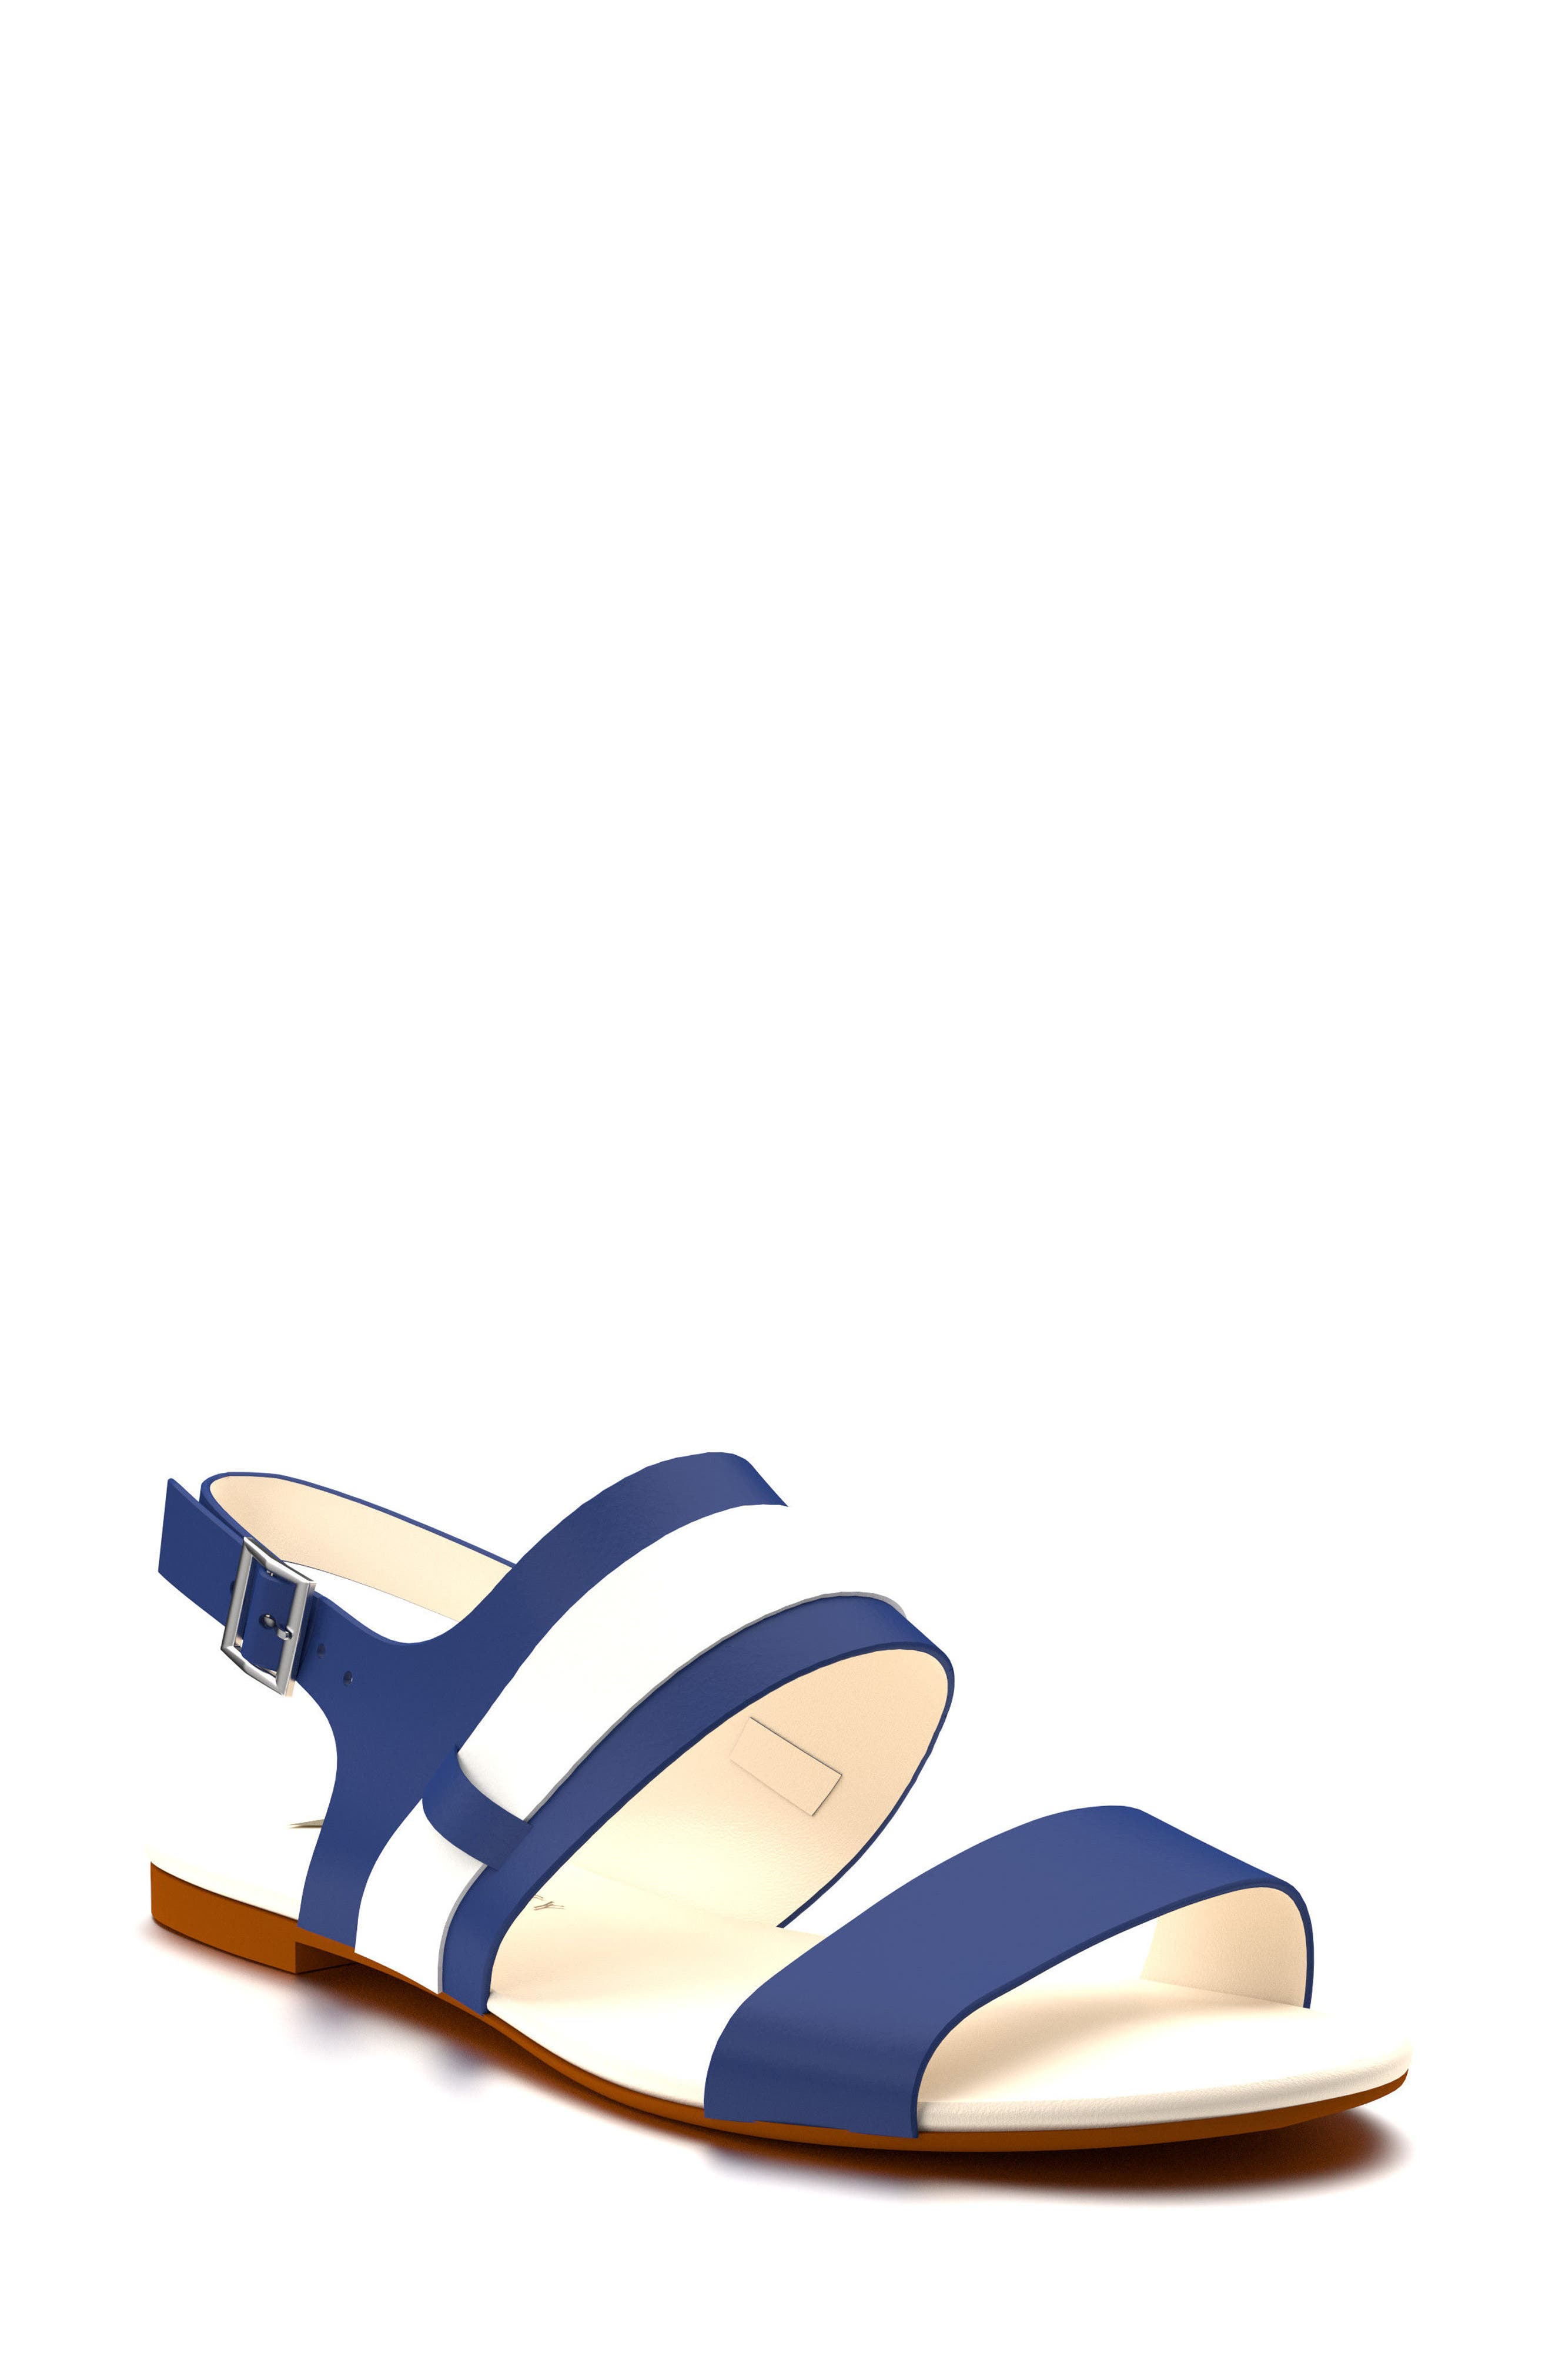 Shoes of Prey Strappy Slingback Sandal (Women)